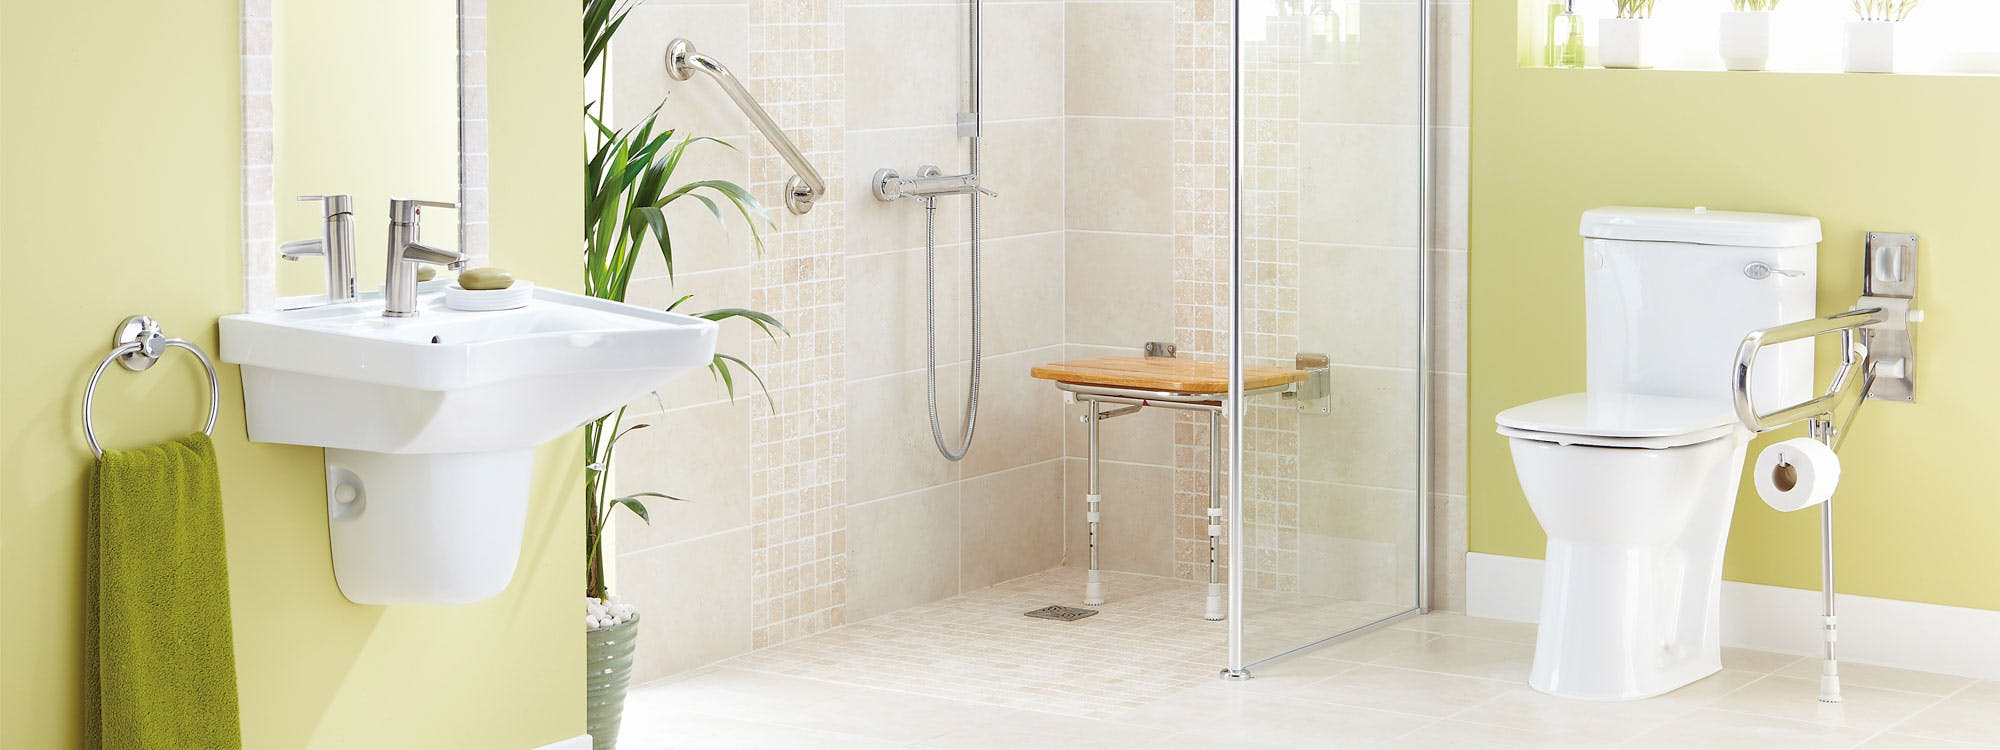 Safe & Practical bathroom solutions - designed, supplied & installed